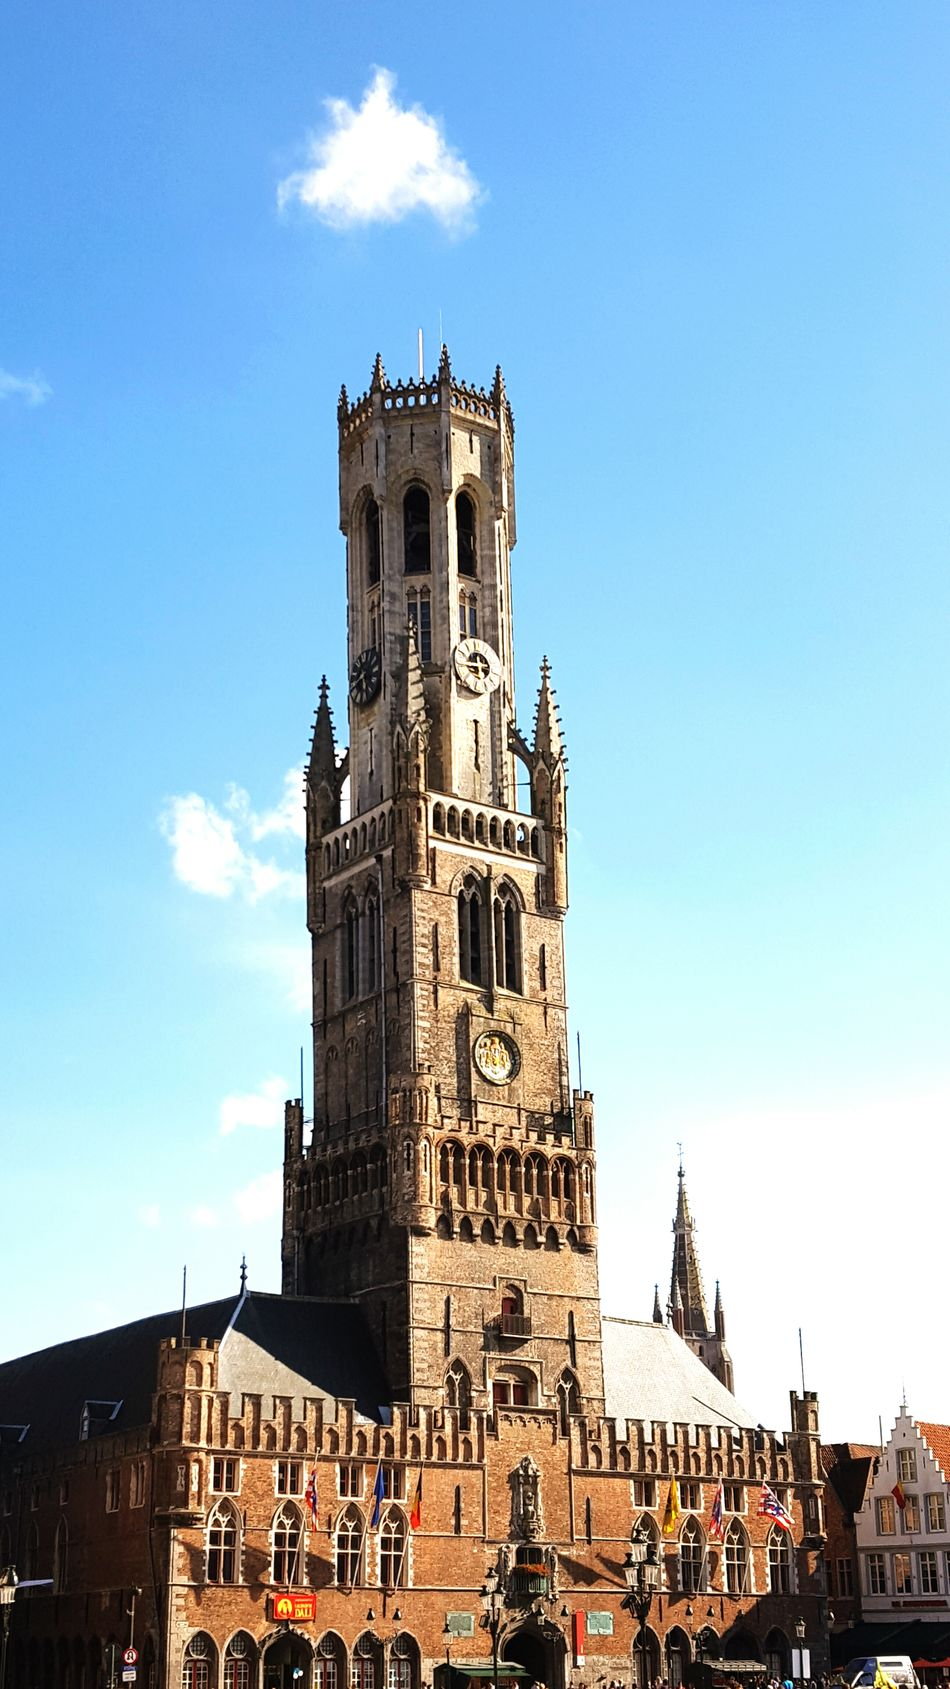 Travel Destinations Large Group Of People History Tower Outdoors Clear Sky Tourism Sky Archival Leisure Activity Place Of Worship Day People Architecture Travel Destination Old Town Cityscape Brugge Bruges Flanders Flandres  Built Structure City Building Exterior Architecture